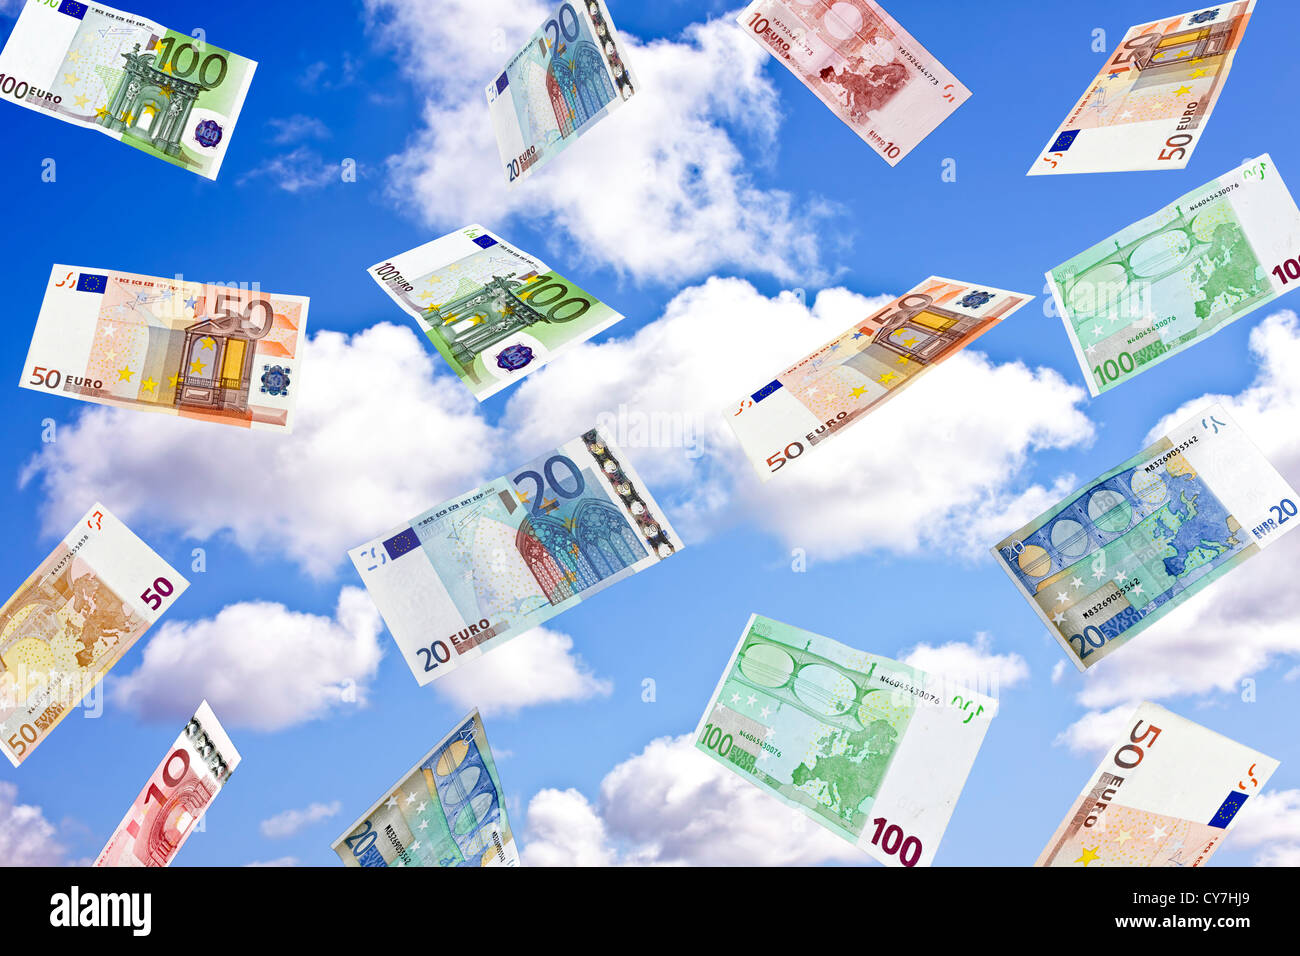 Euro biljets whirling in the sky - Stock Image